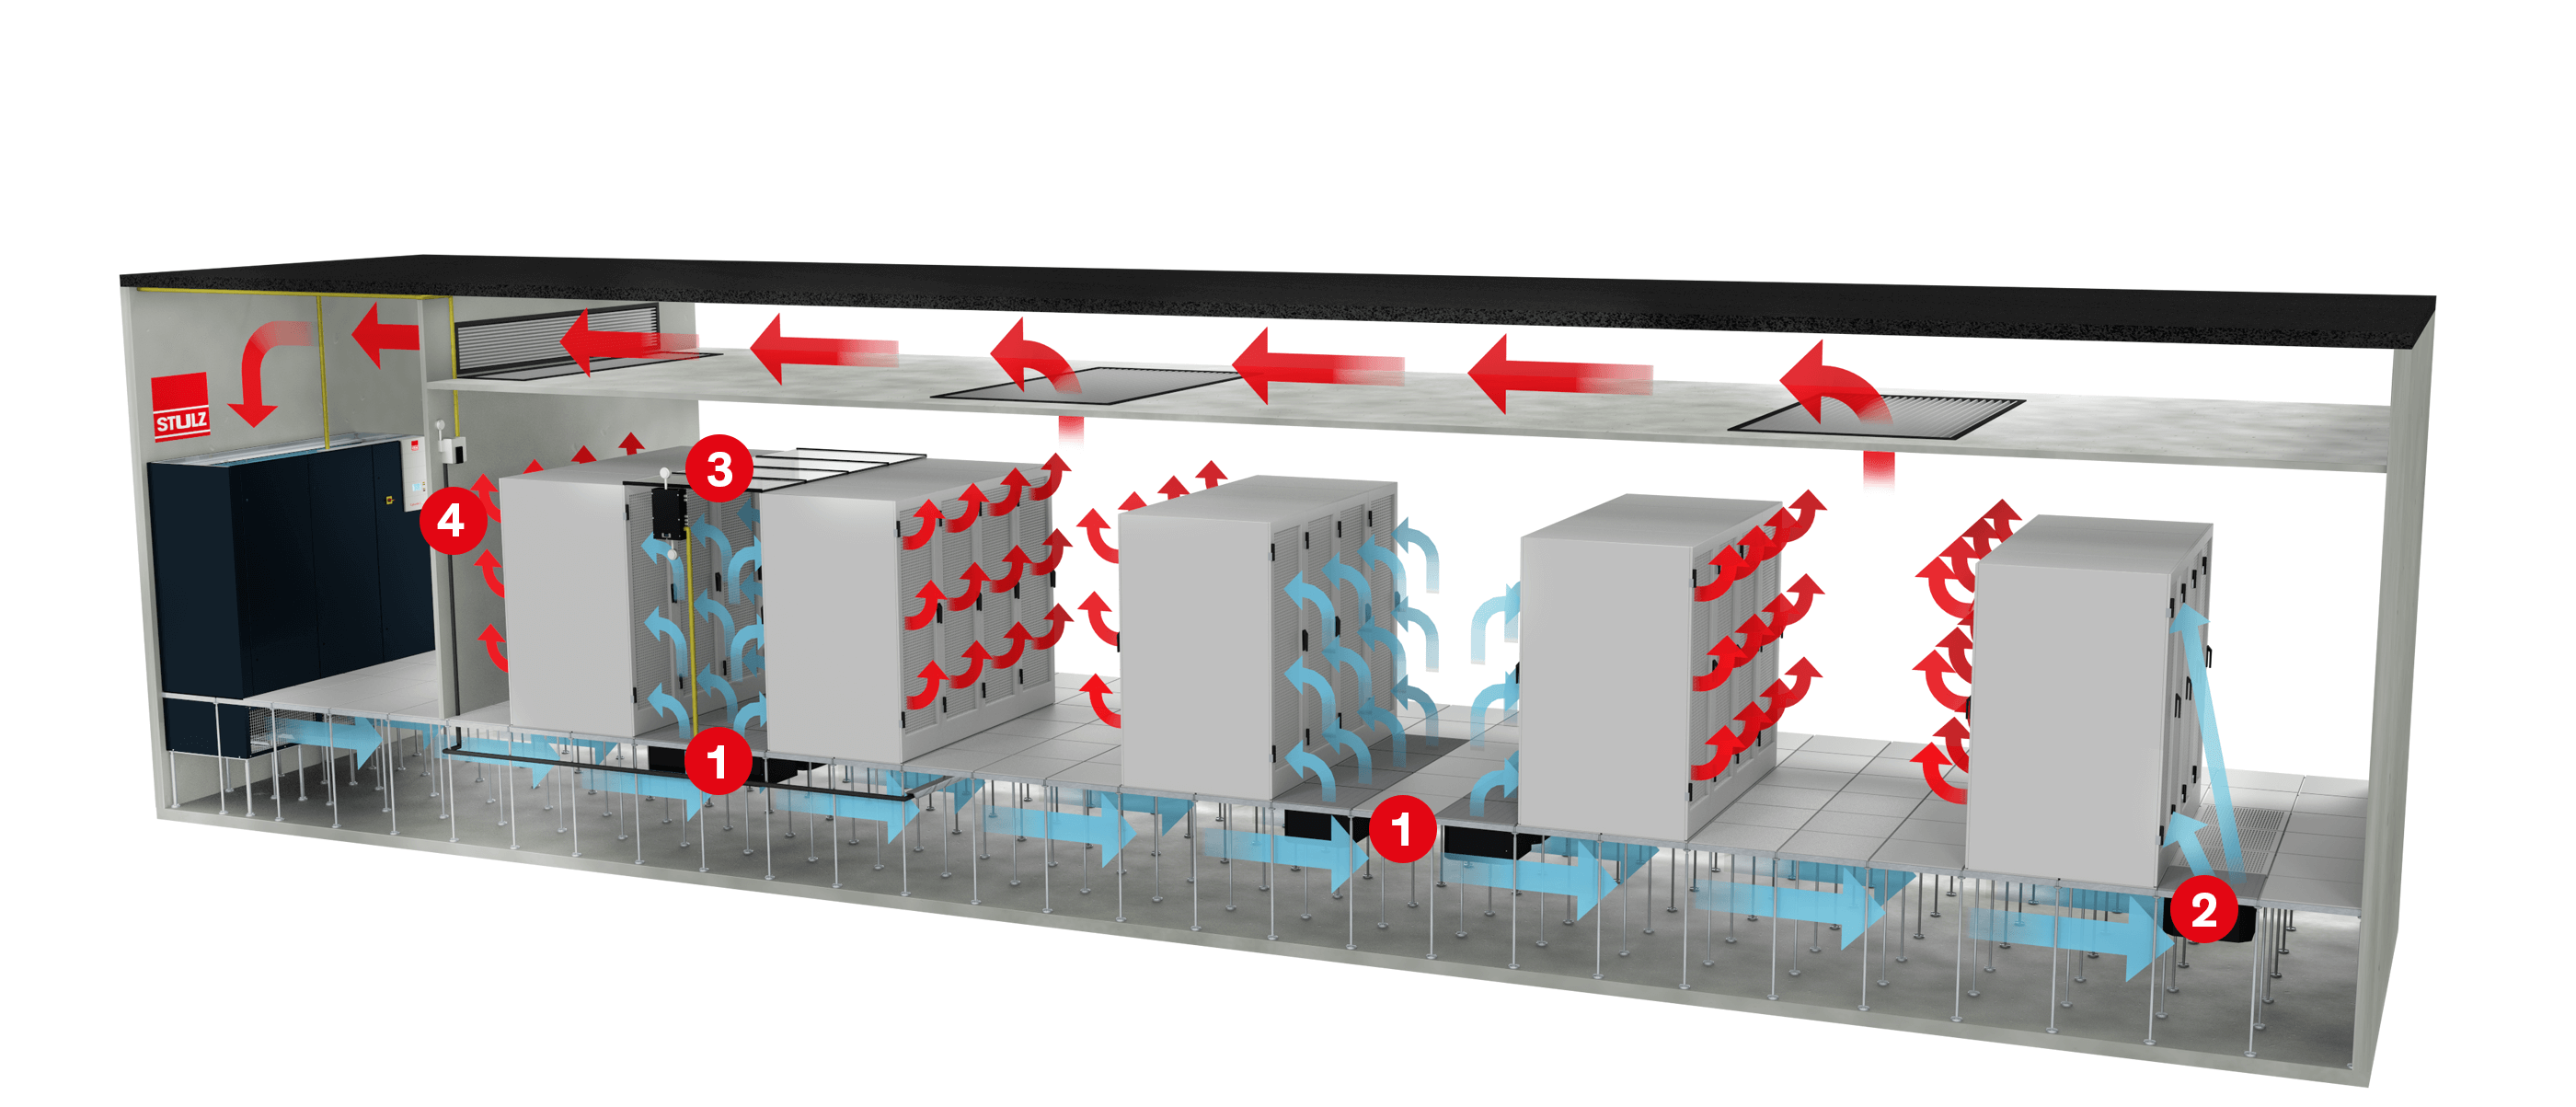 Airflow in Data Center